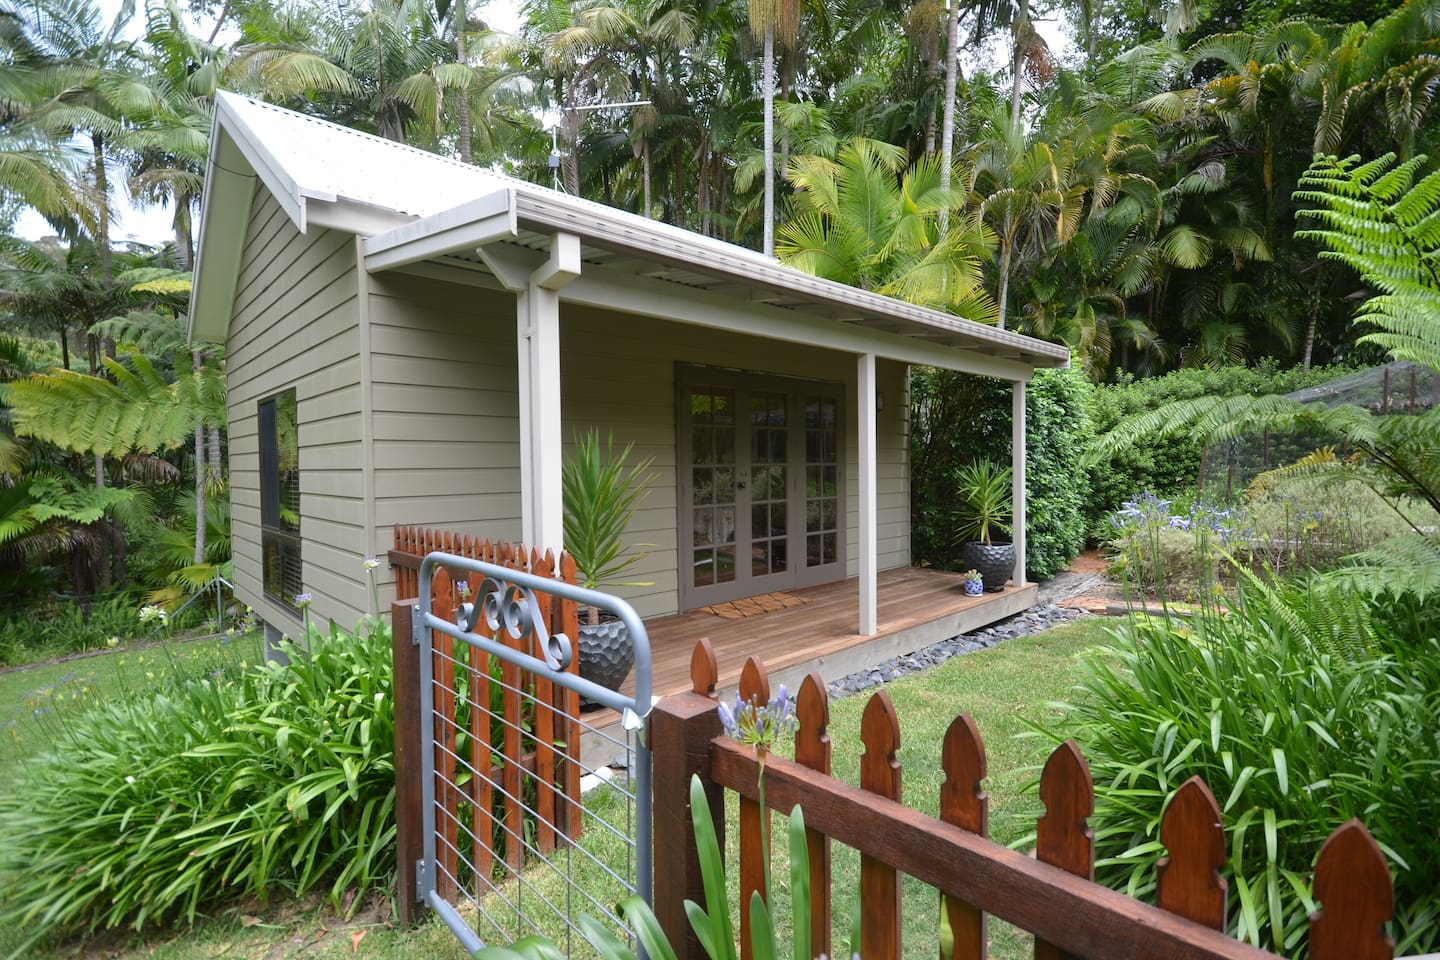 The cottage is a few metres away from the main residence. The French doors have a blind which can be drawn at night for privacy.